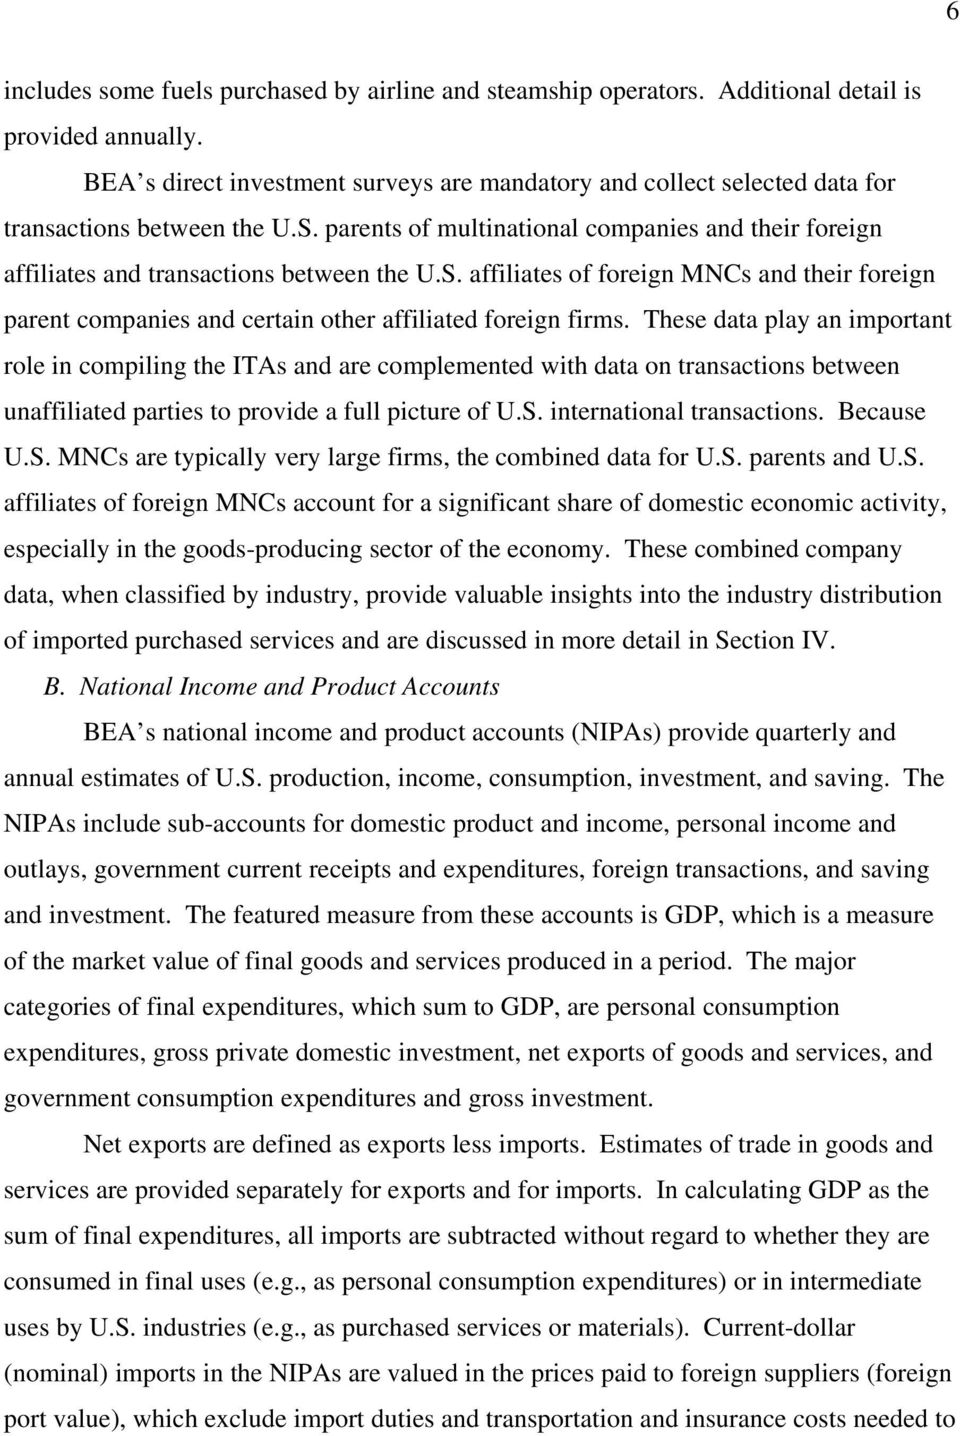 parents of multinational companies and their foreign affiliates and transactions between the U.S.